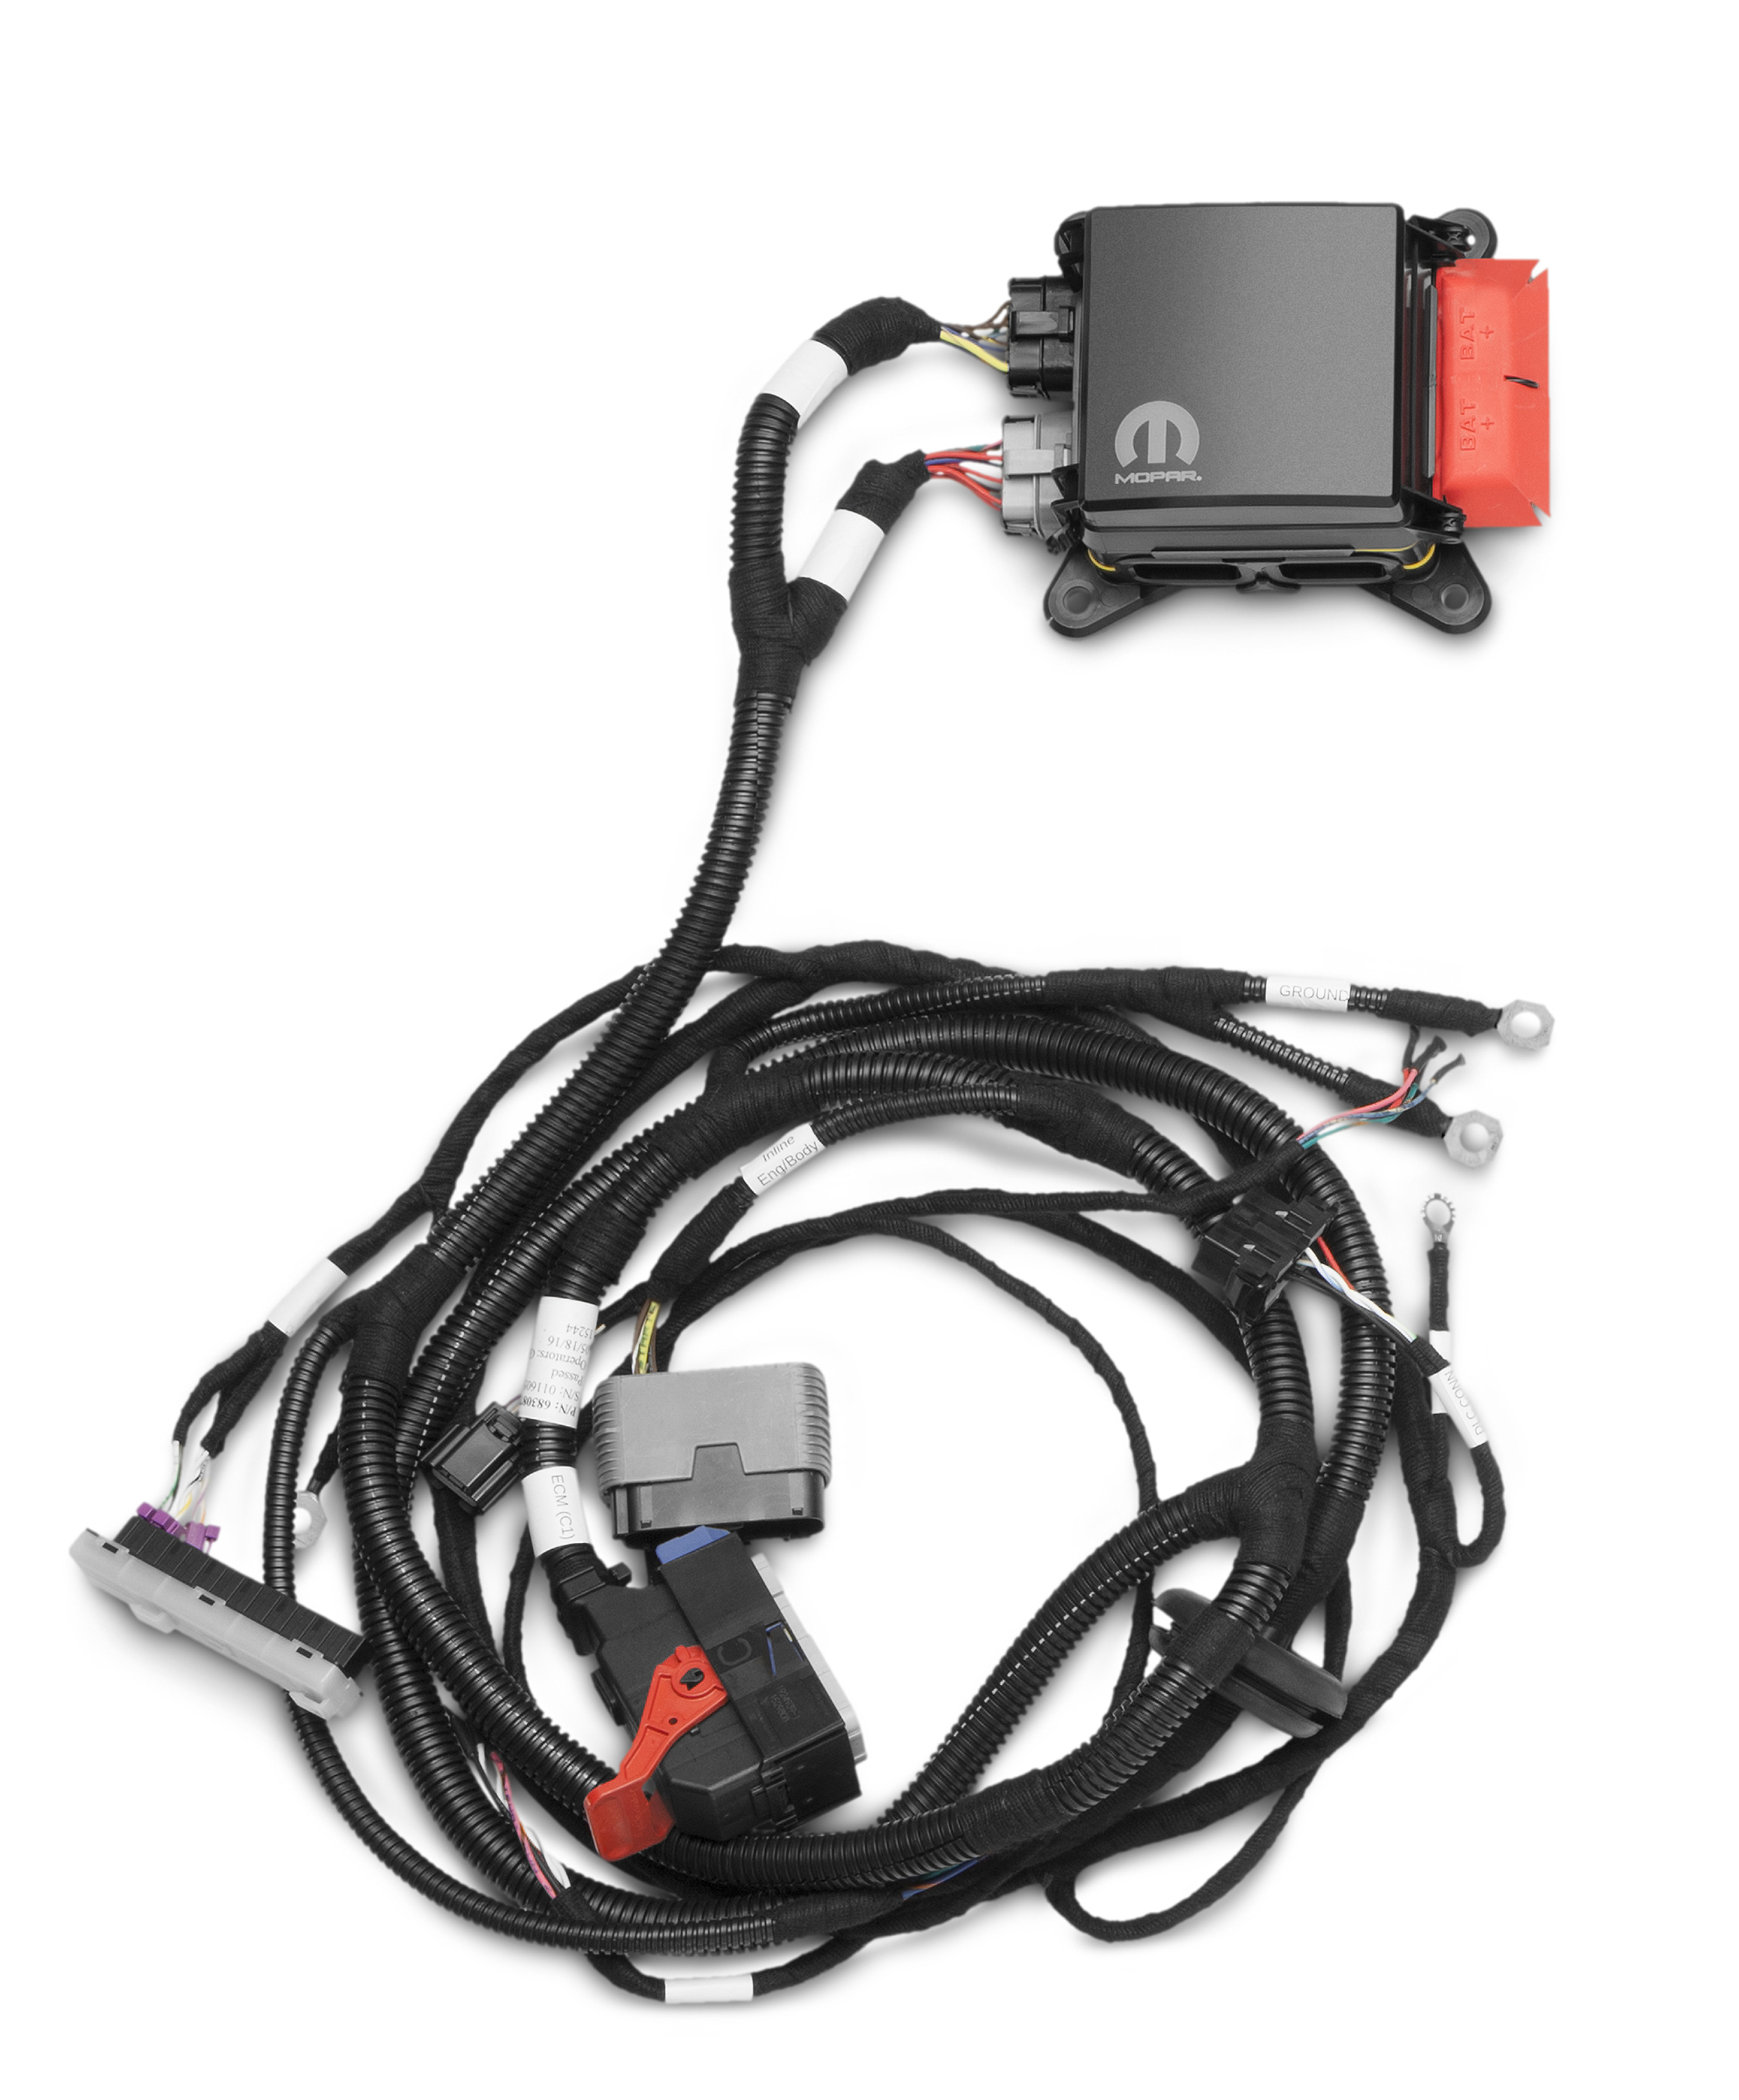 Swap A Modern Hemi Into Your Classic Mopar With Mopars New Crate 1974 Dodge Challenger Wiring Harness Engine Kits Connection Magazine Comprehensive Daily Resource For